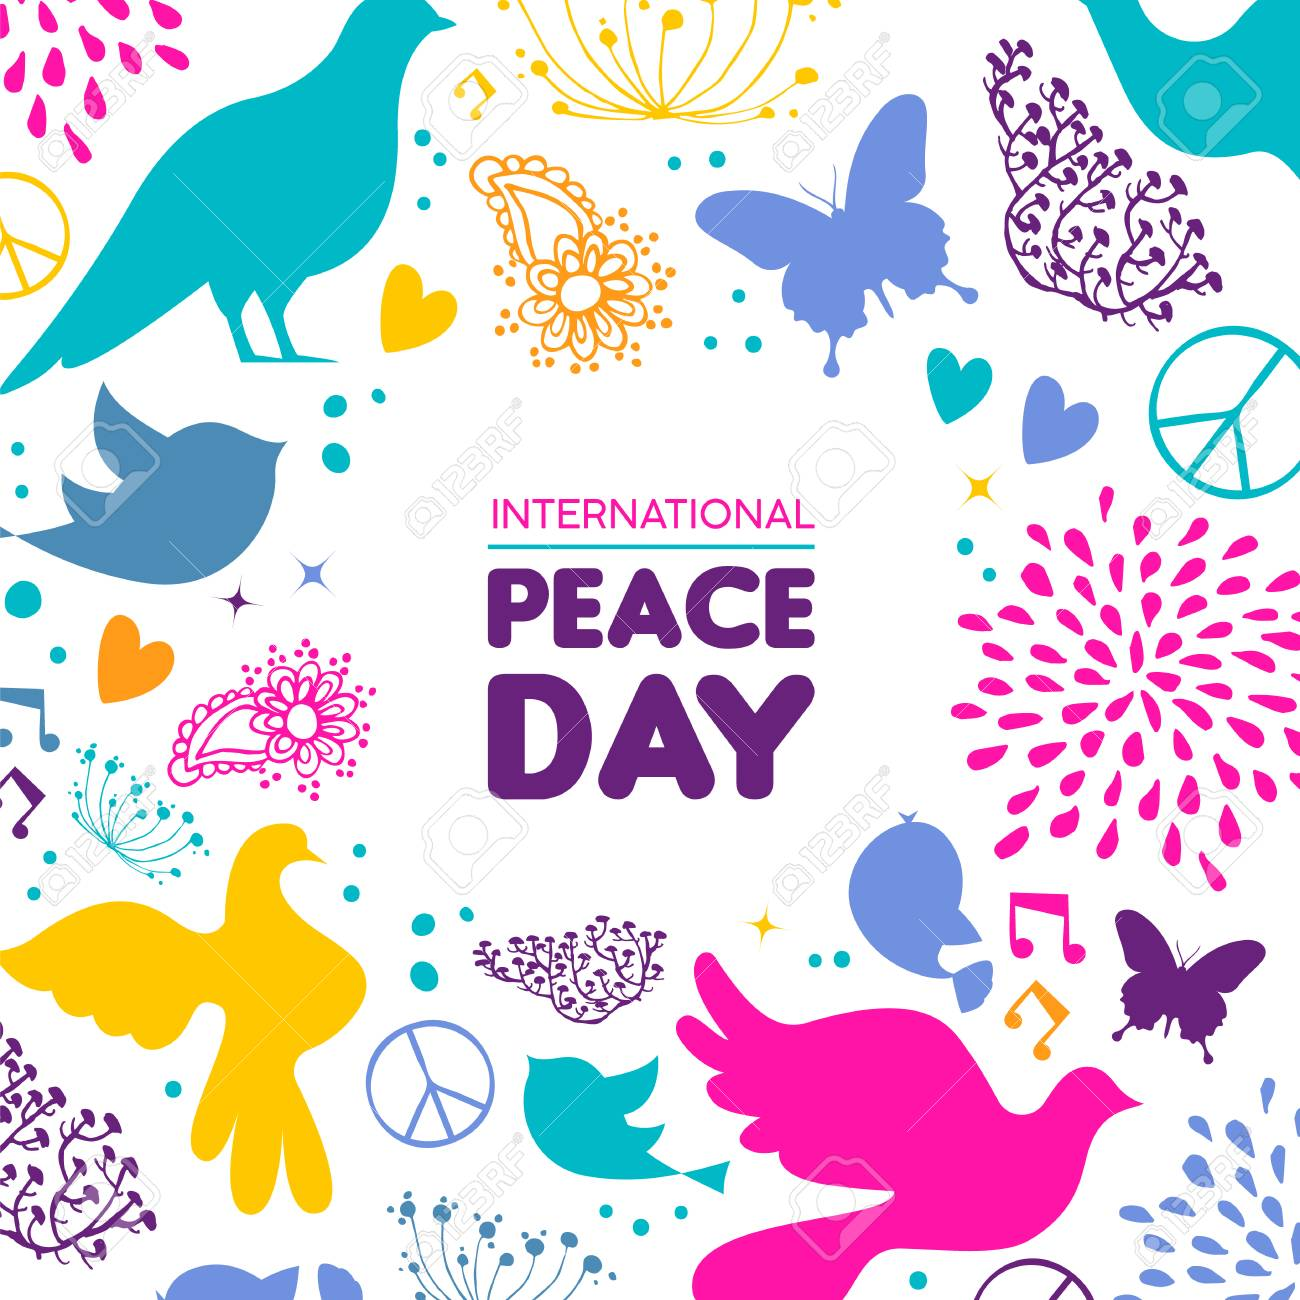 International Peace Day Art Projects